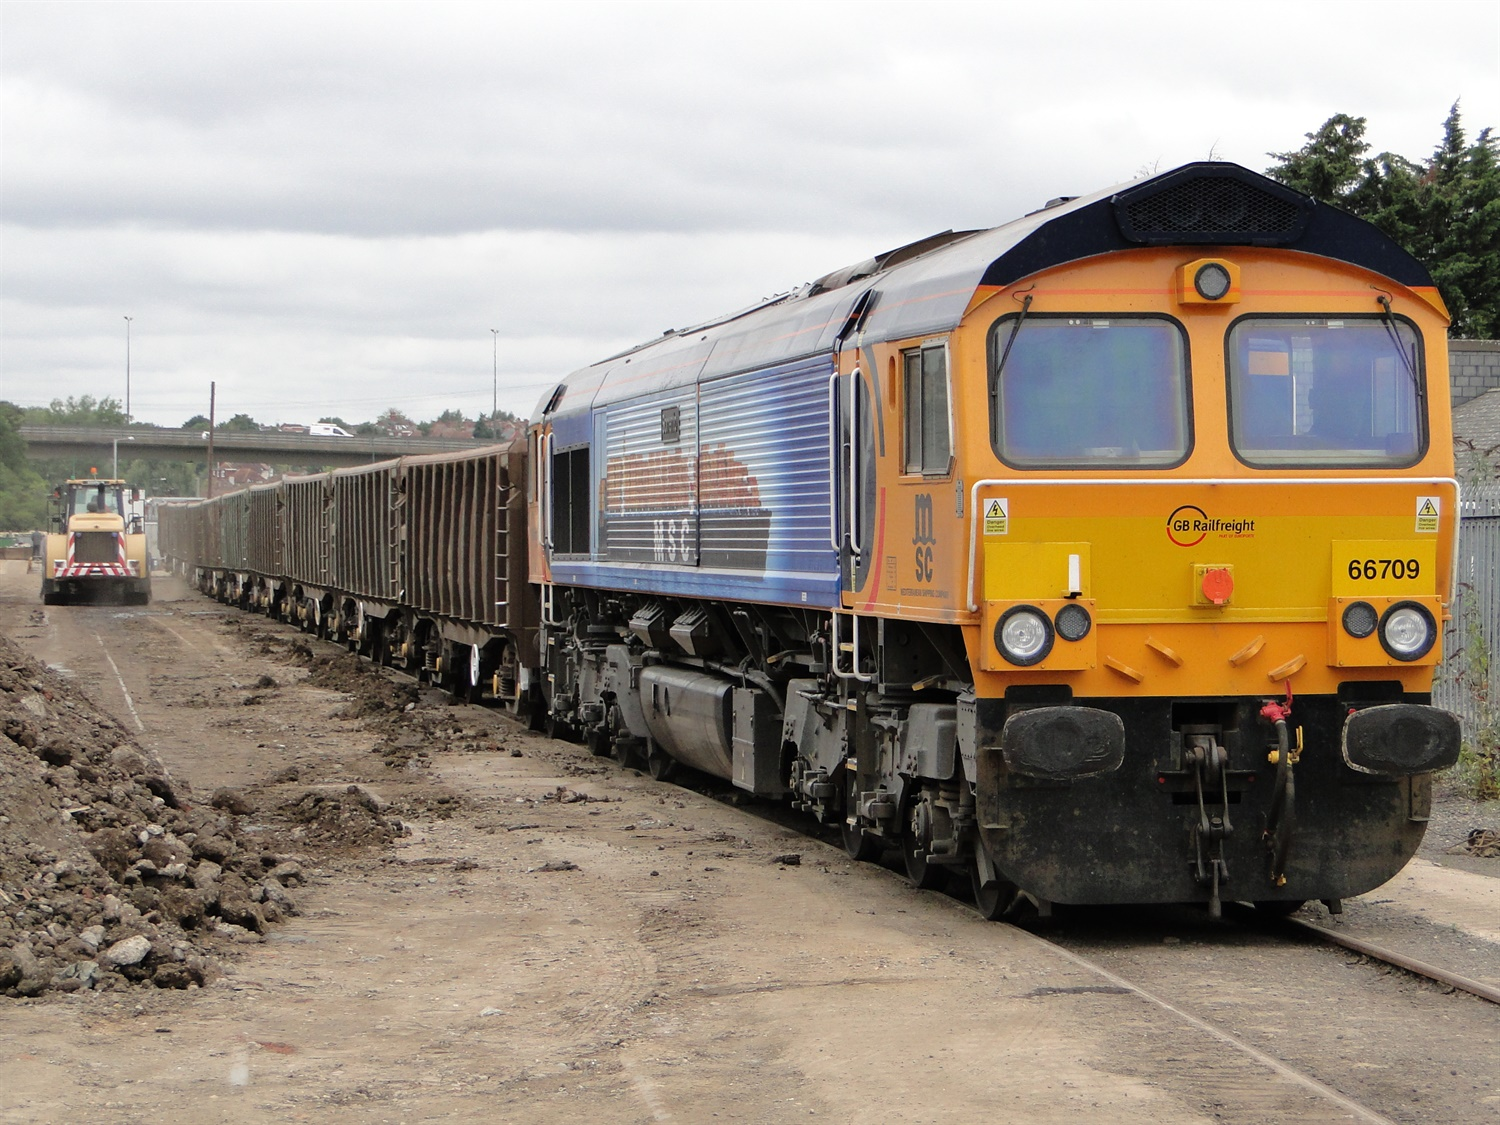 GBRf runs first waste train from new North London Railfreight Terminal